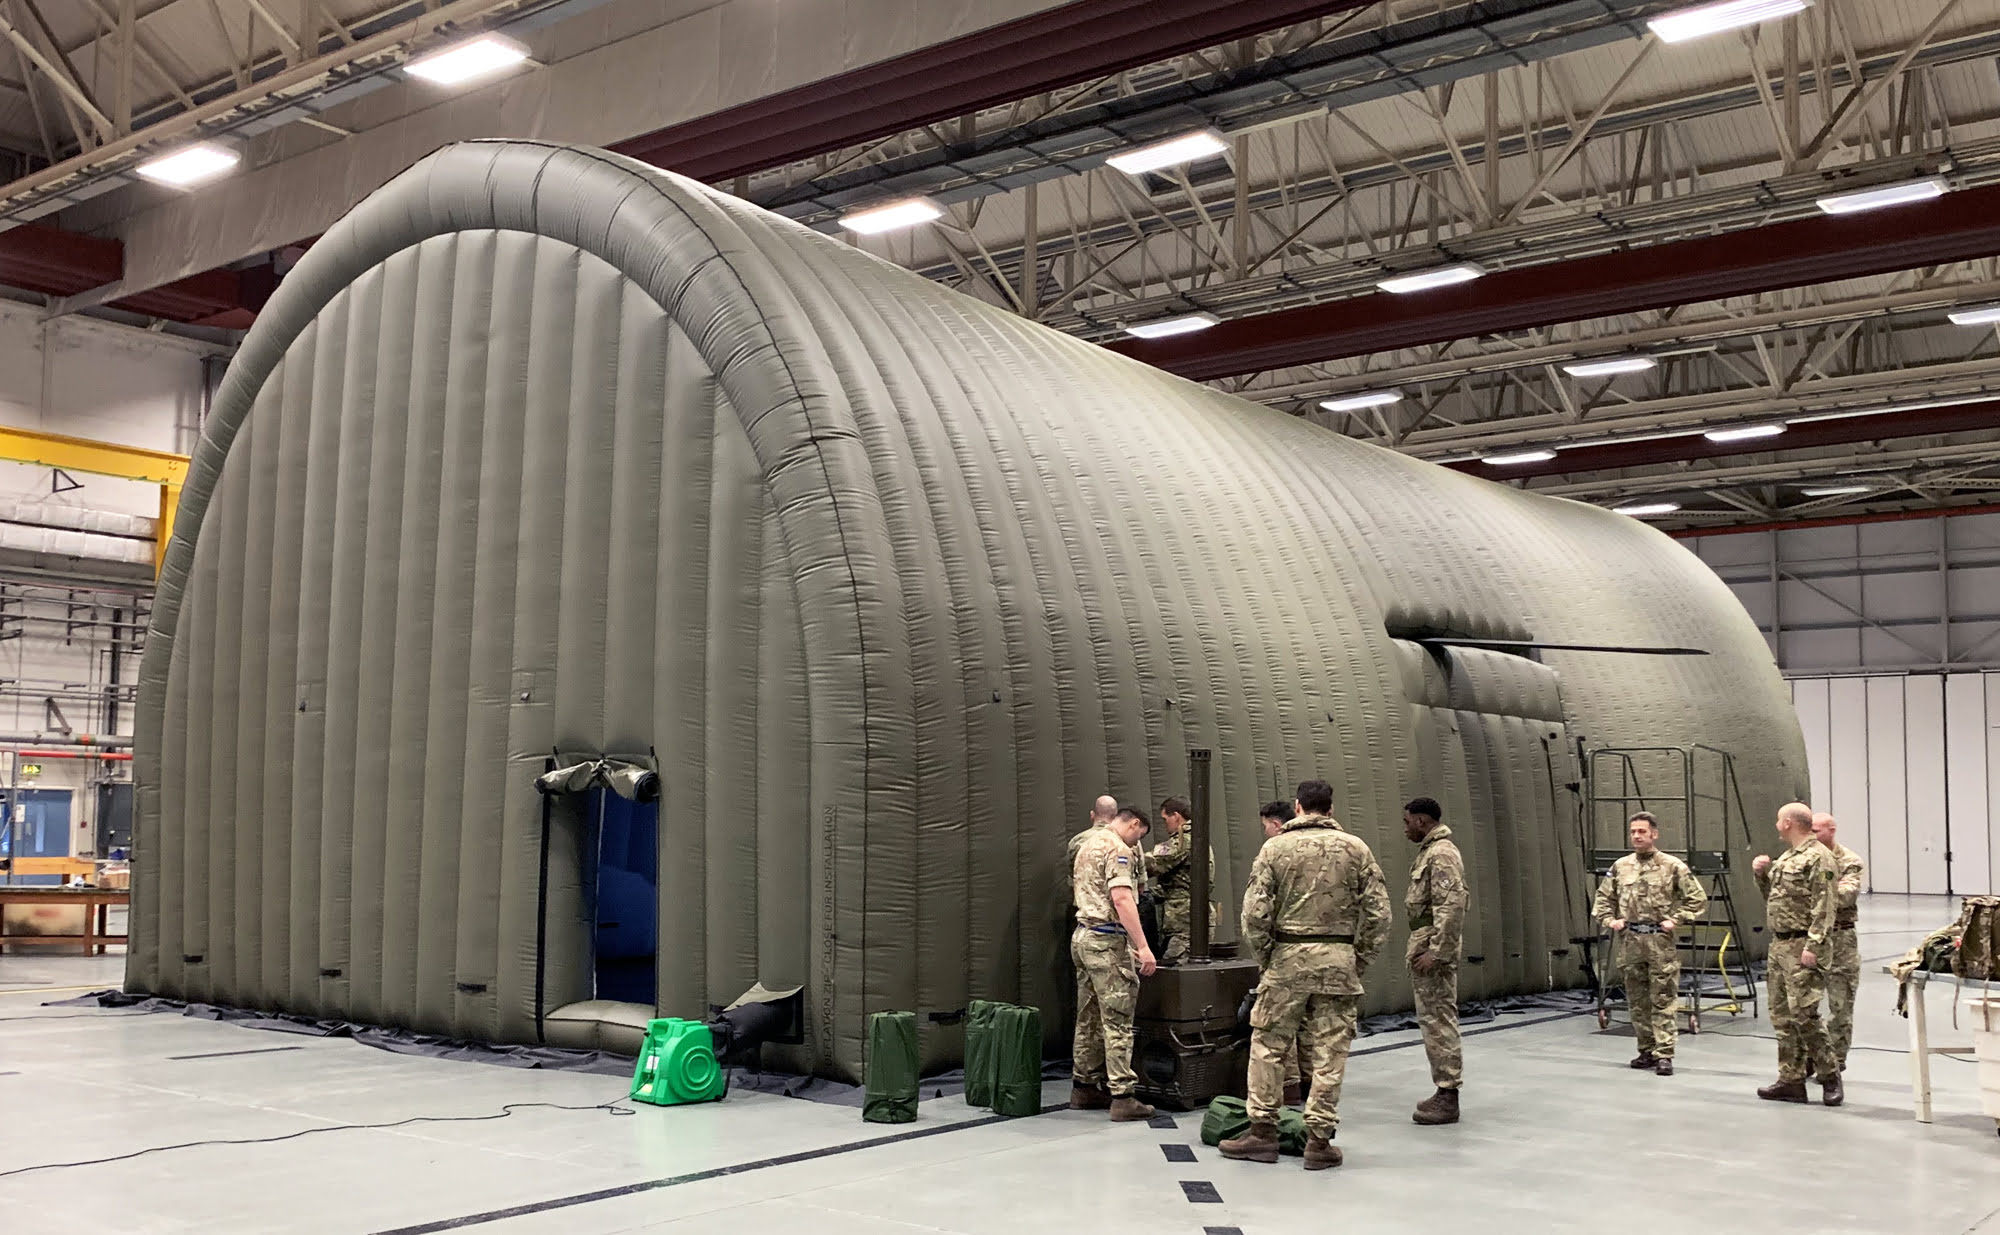 Helicopter Environmental Shelter